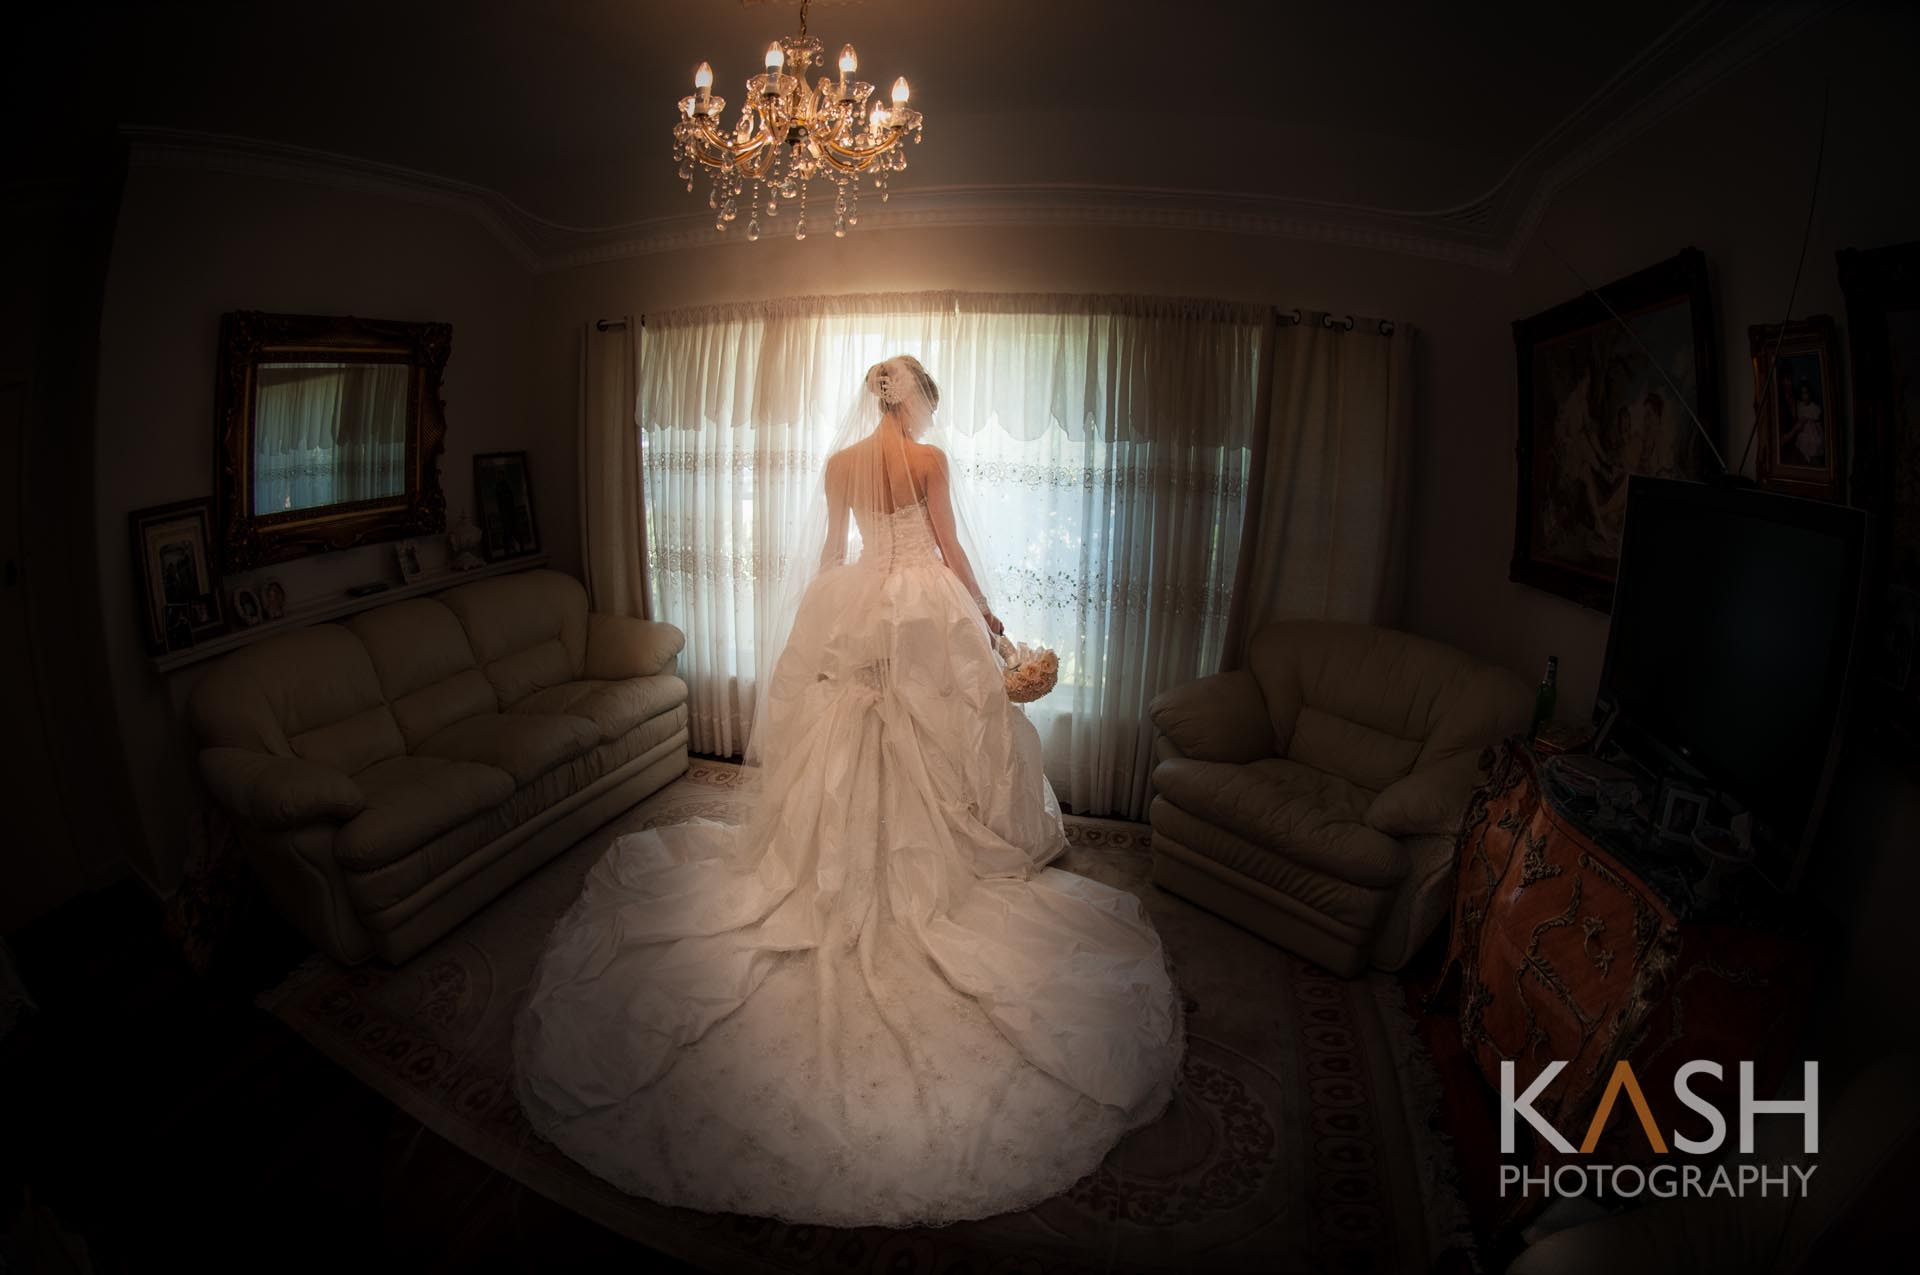 KASH PHOTOGRAPHY 7036